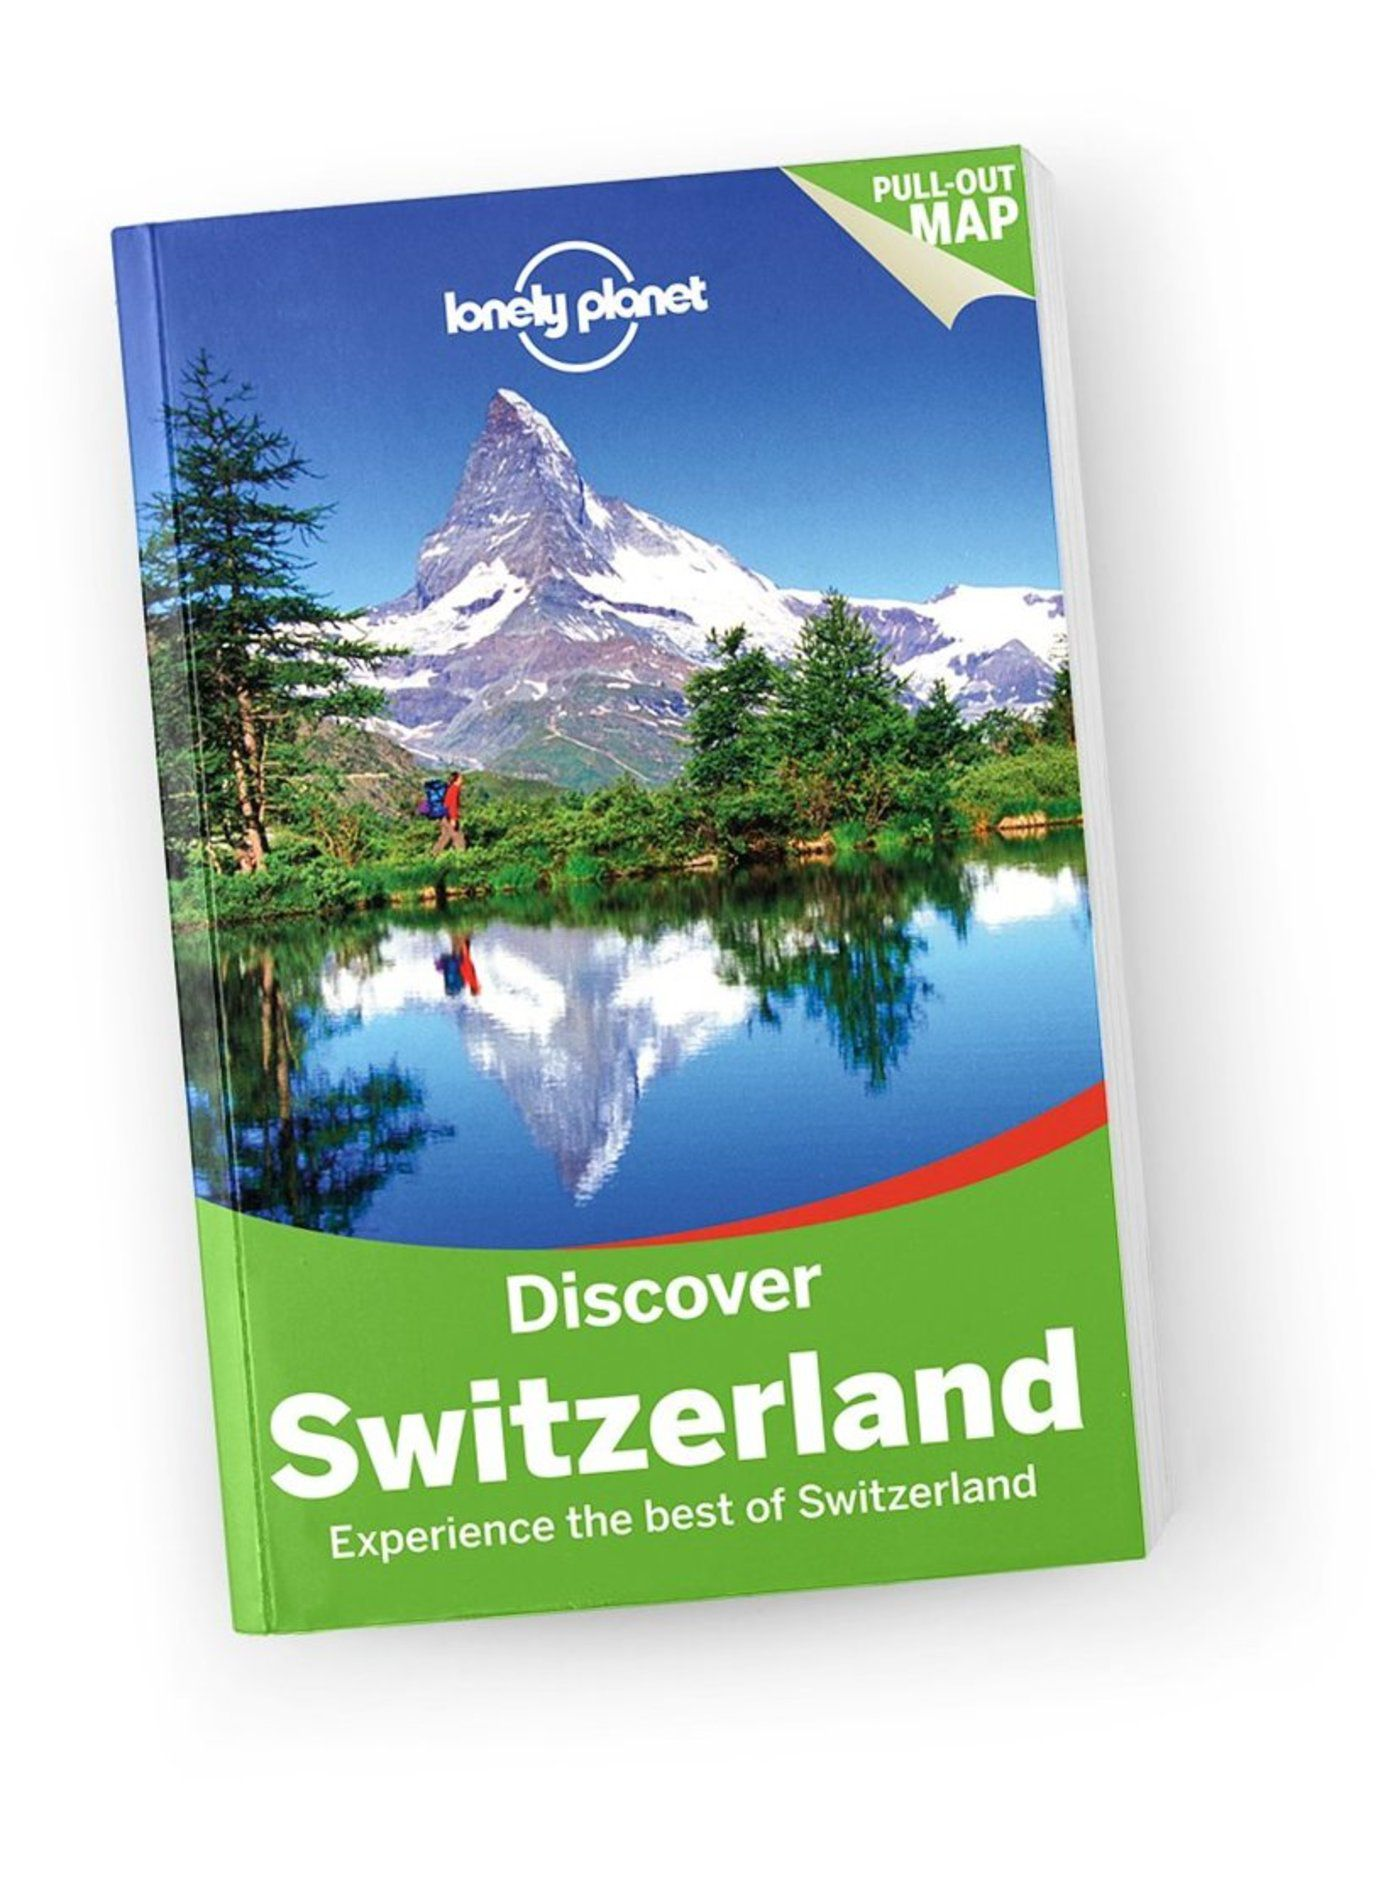 Lonely planet discover switzerland travel guide lonely planet us discover switzerland 2nd edition fandeluxe Gallery